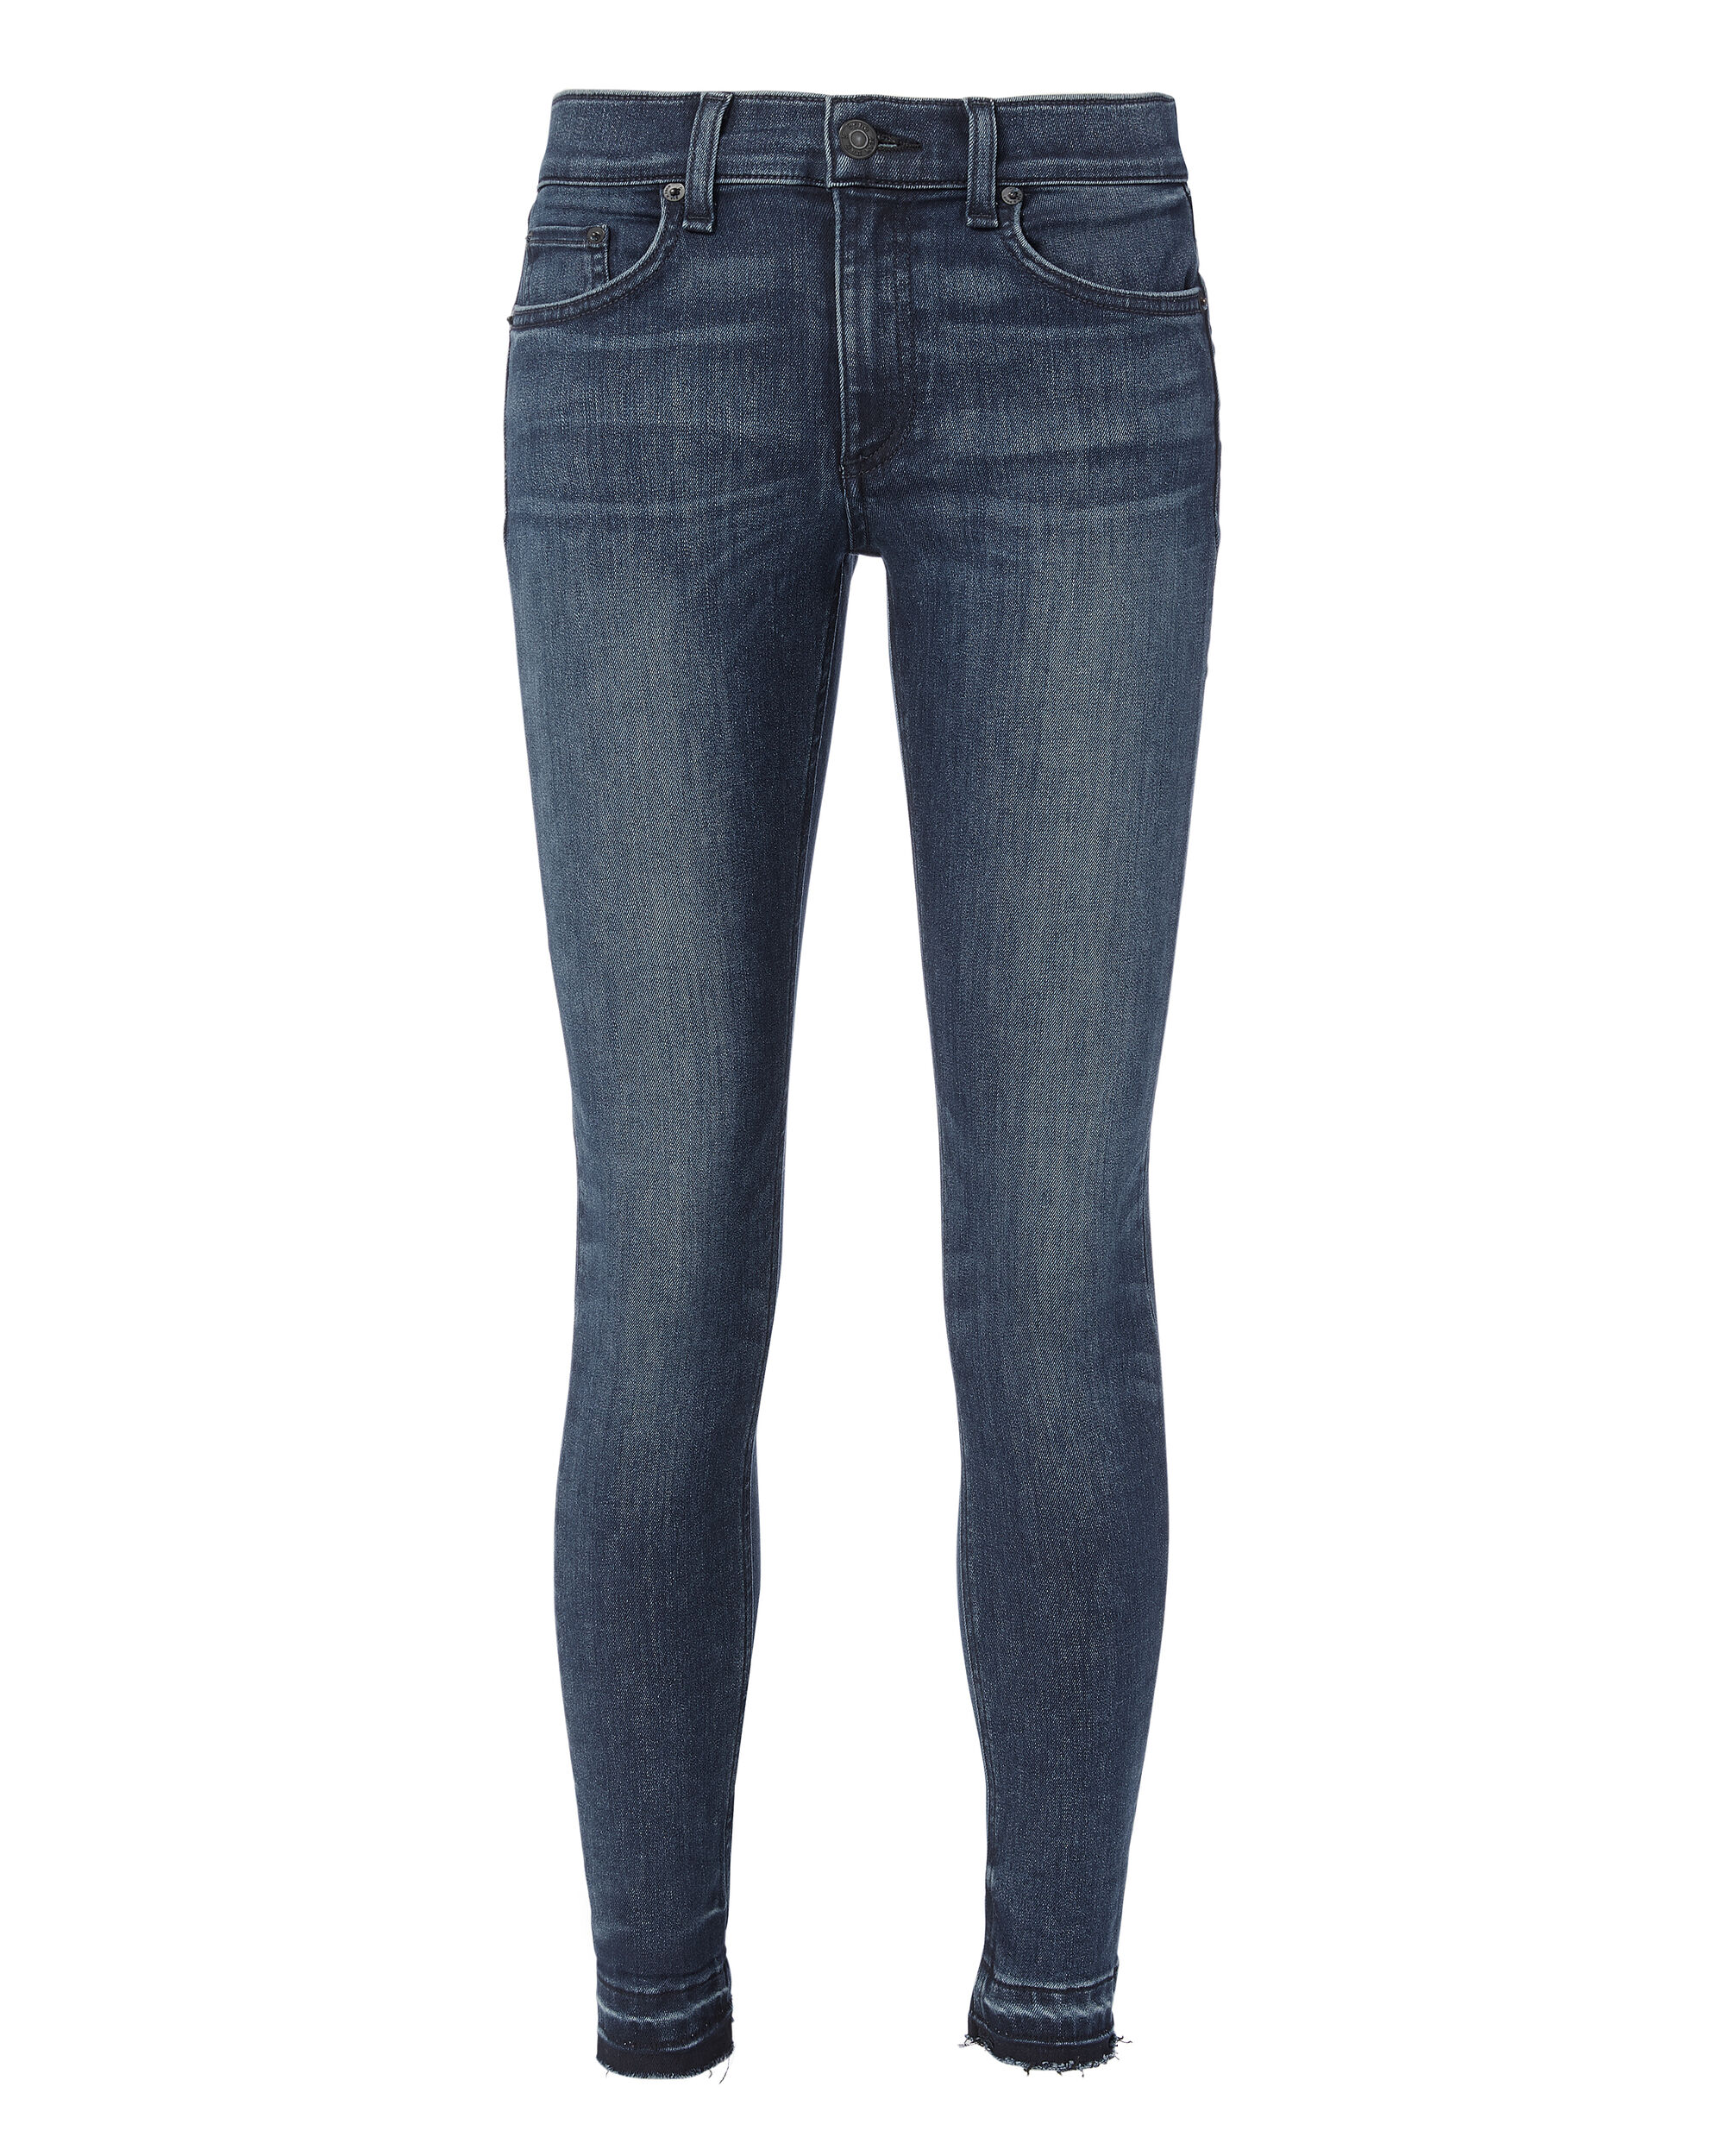 Alembic Two-Tone Hem Jeans, DENIM-DRK, hi-res